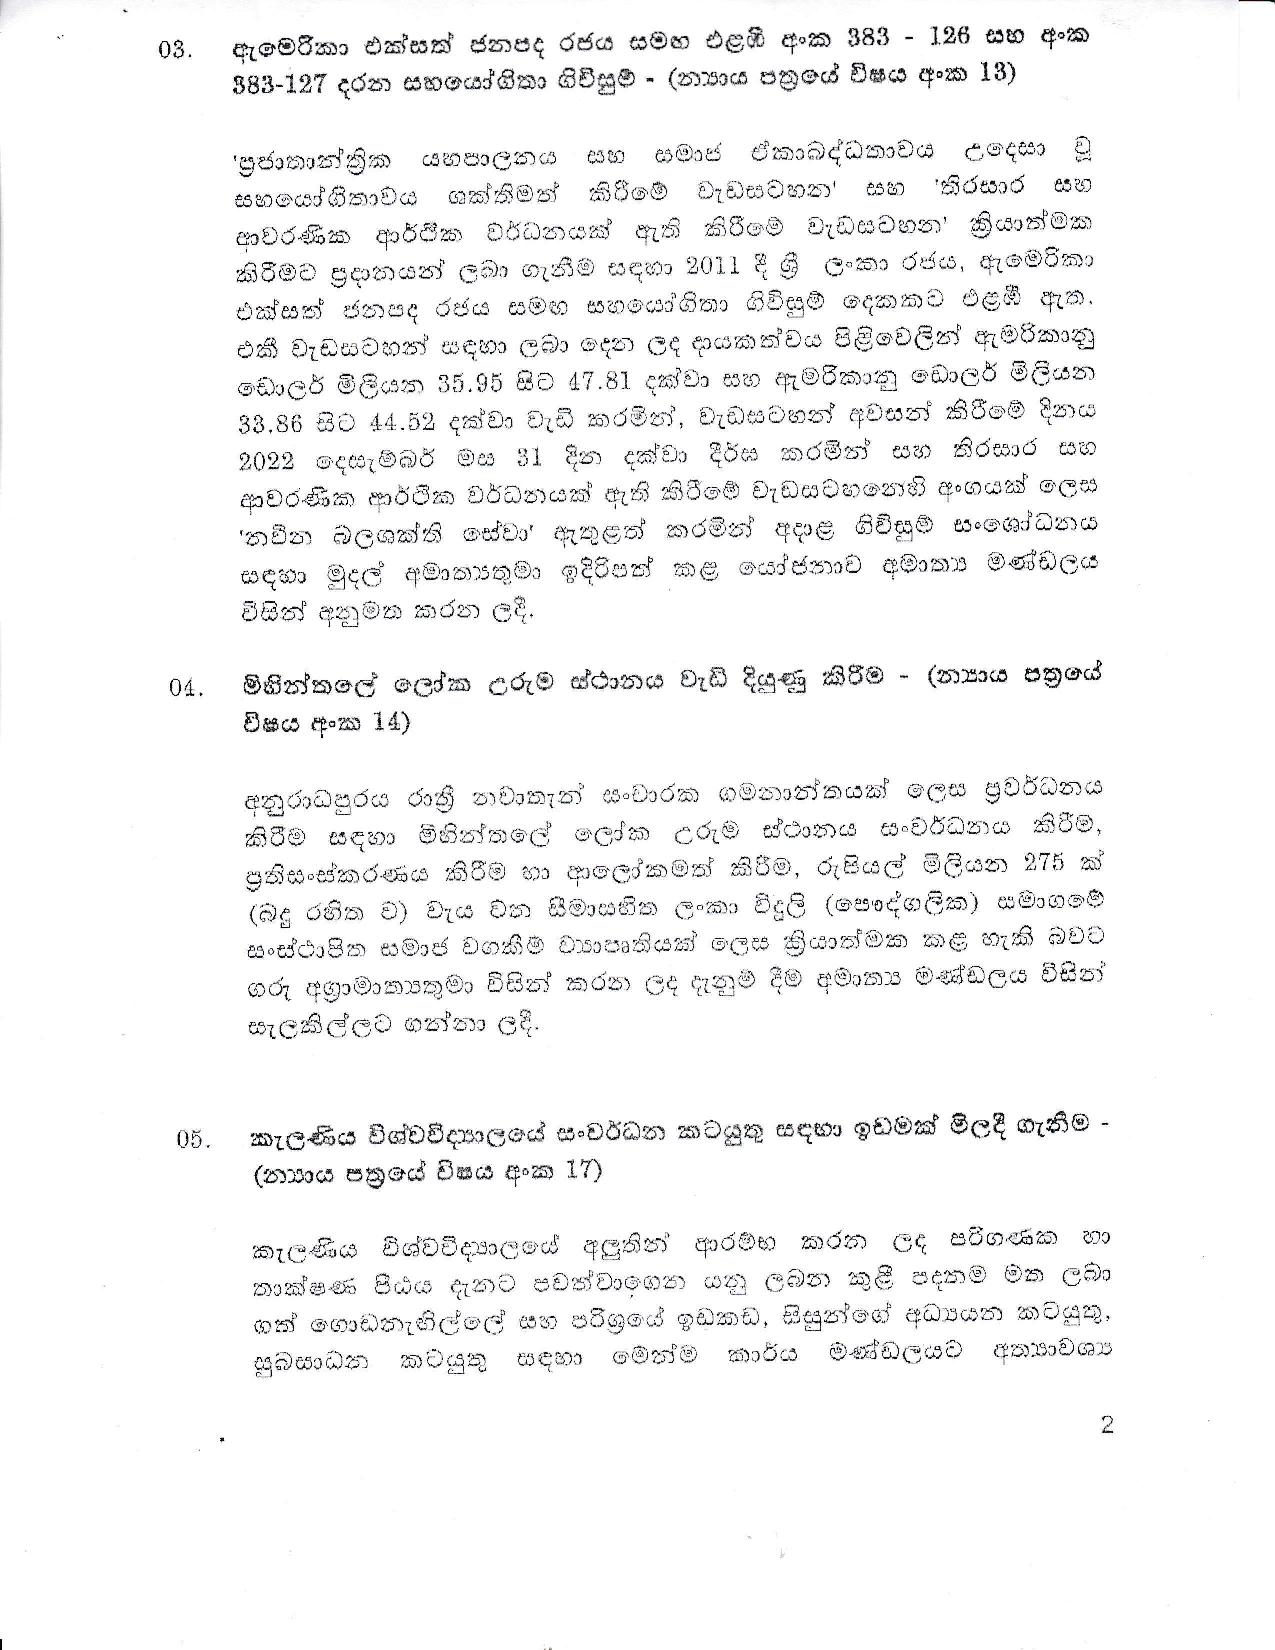 Cabinet Decision on 20.08.2019 1 page 002